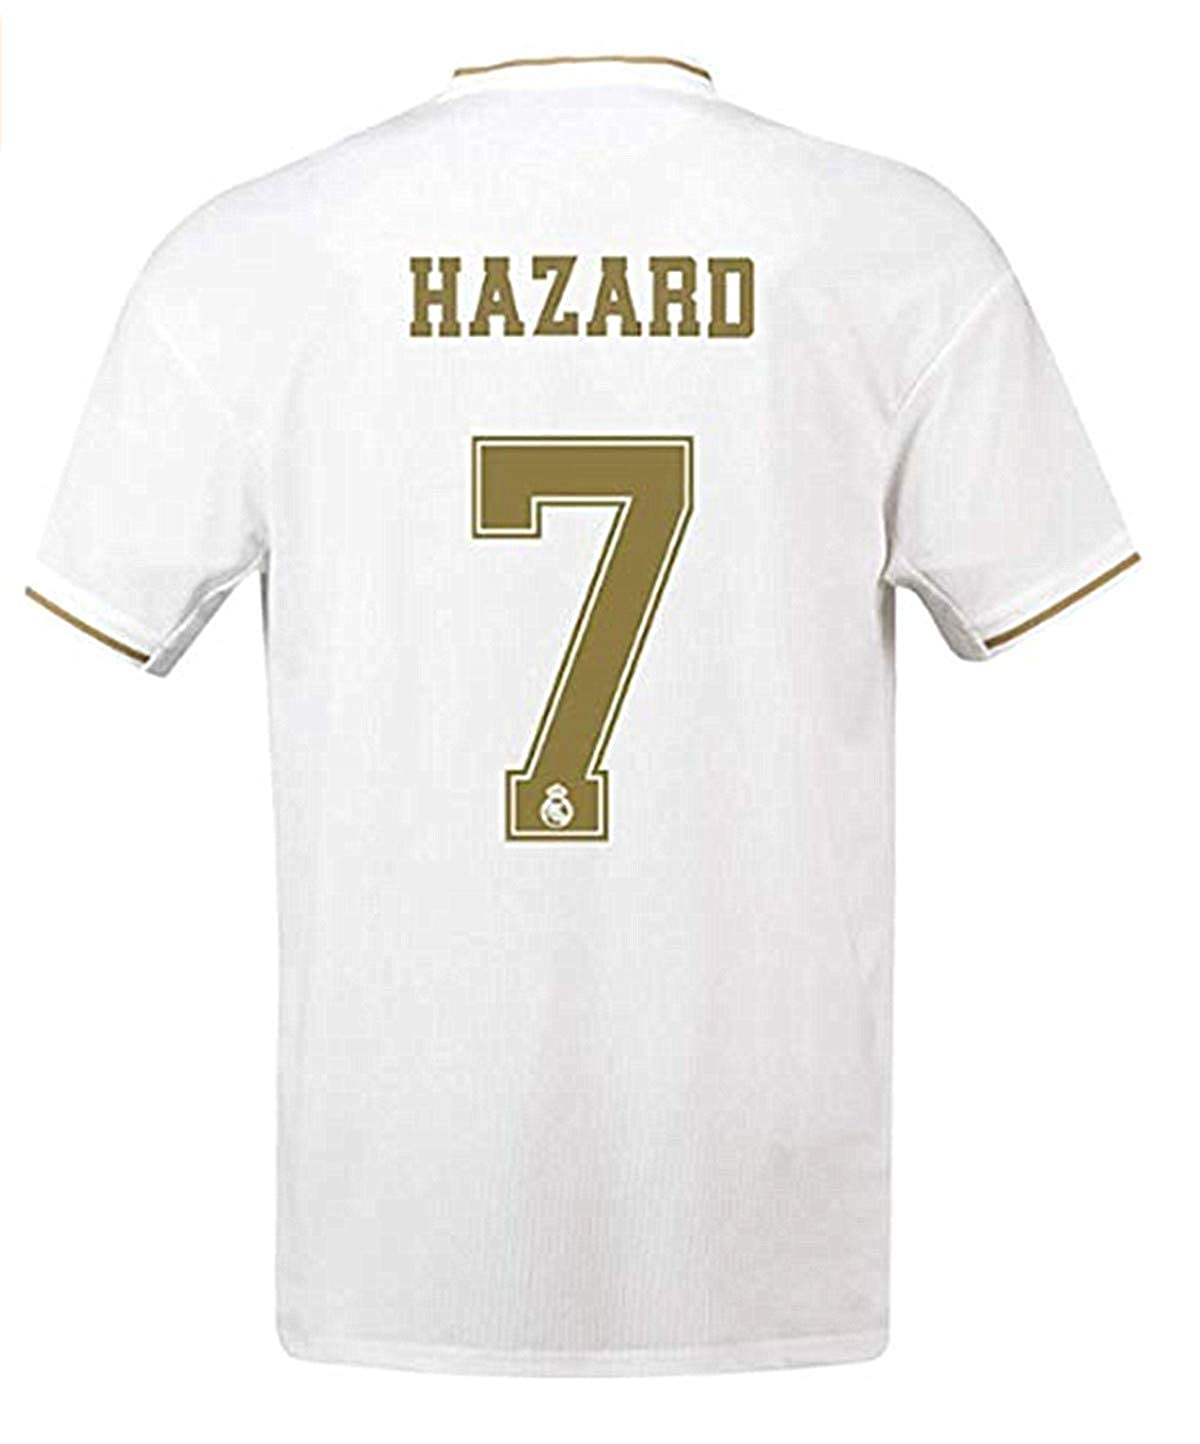 check out 101a4 76a4b Mens Hazard Jersey Real Madrid # 7 Soccer Jersey 2019-2020 Home White  Jersey & Shorts